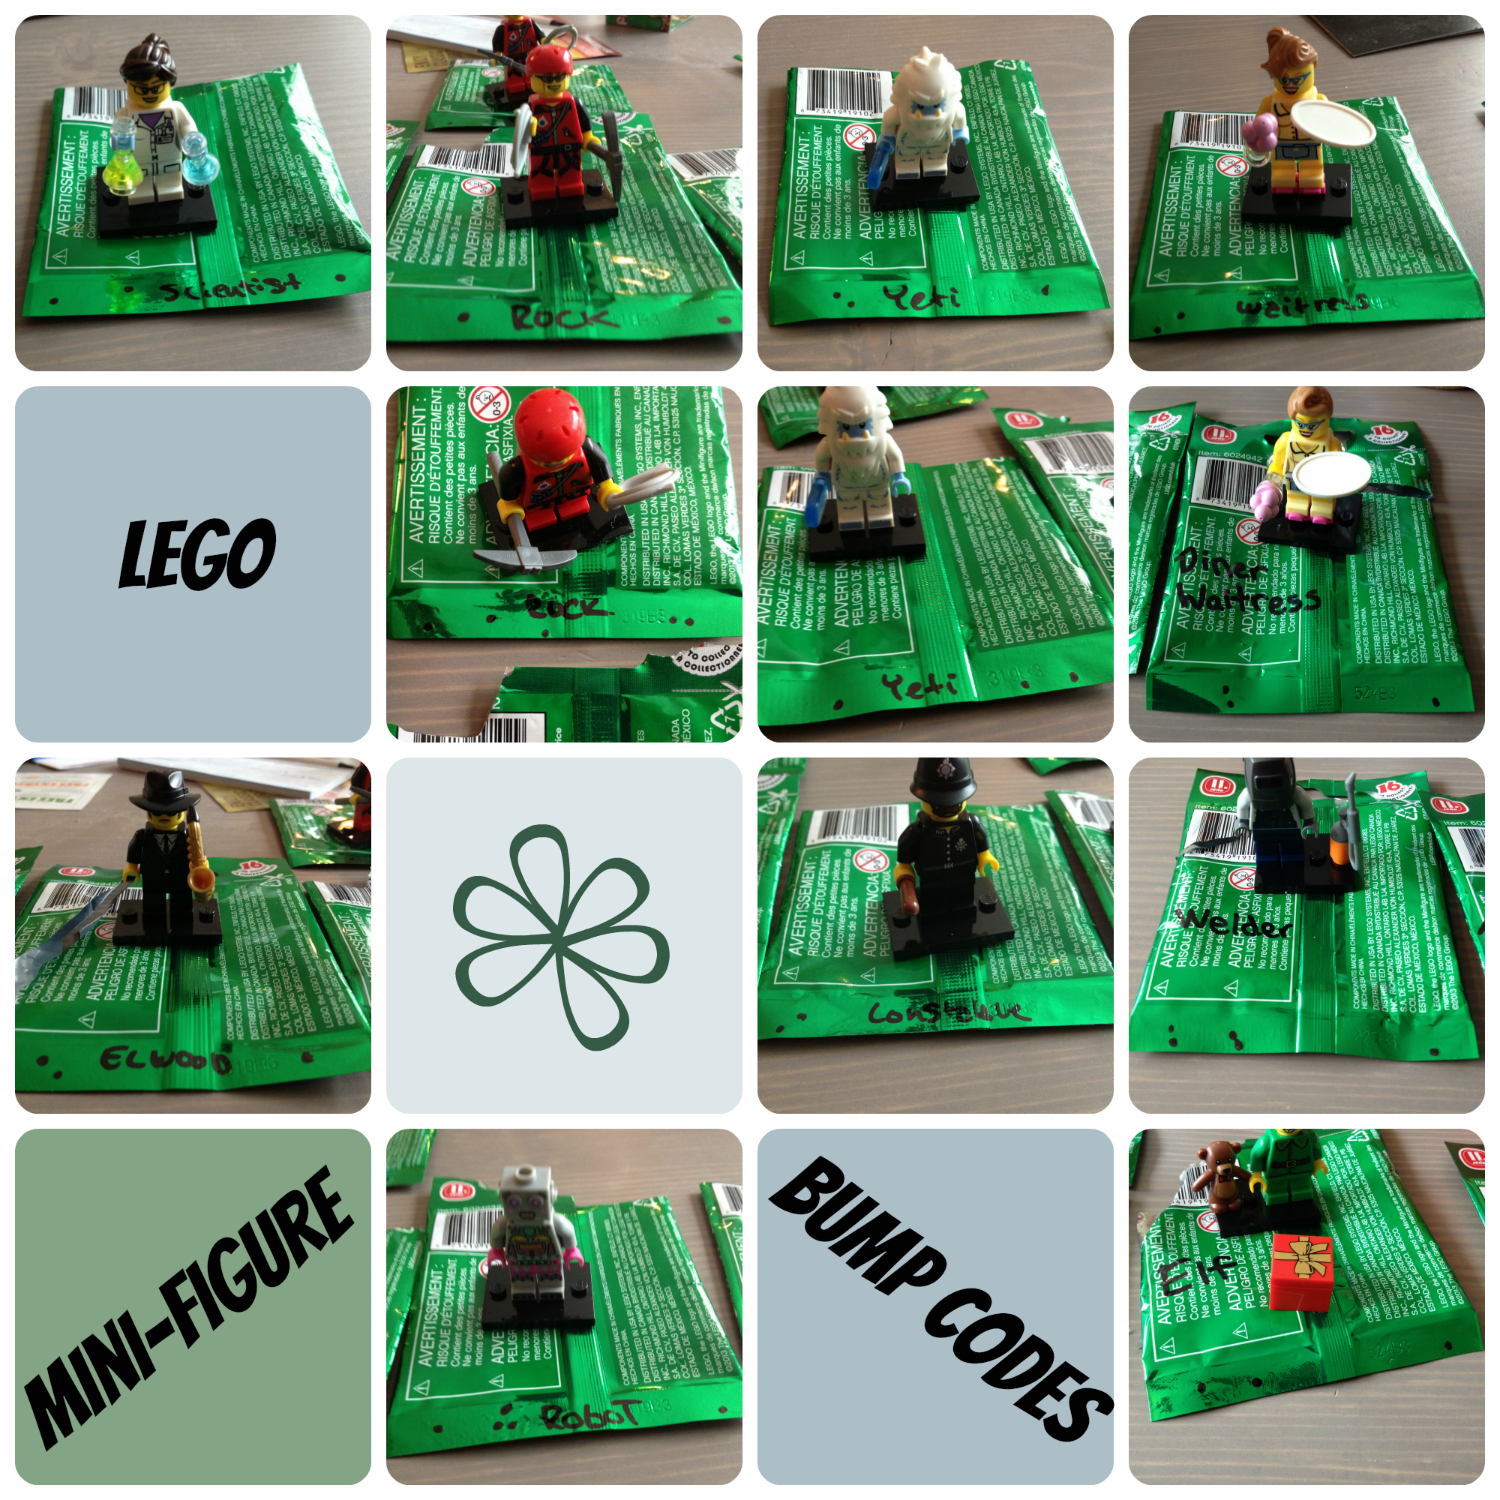 More bumping: Lego Minifigures Series 11 - Chronicles of ...